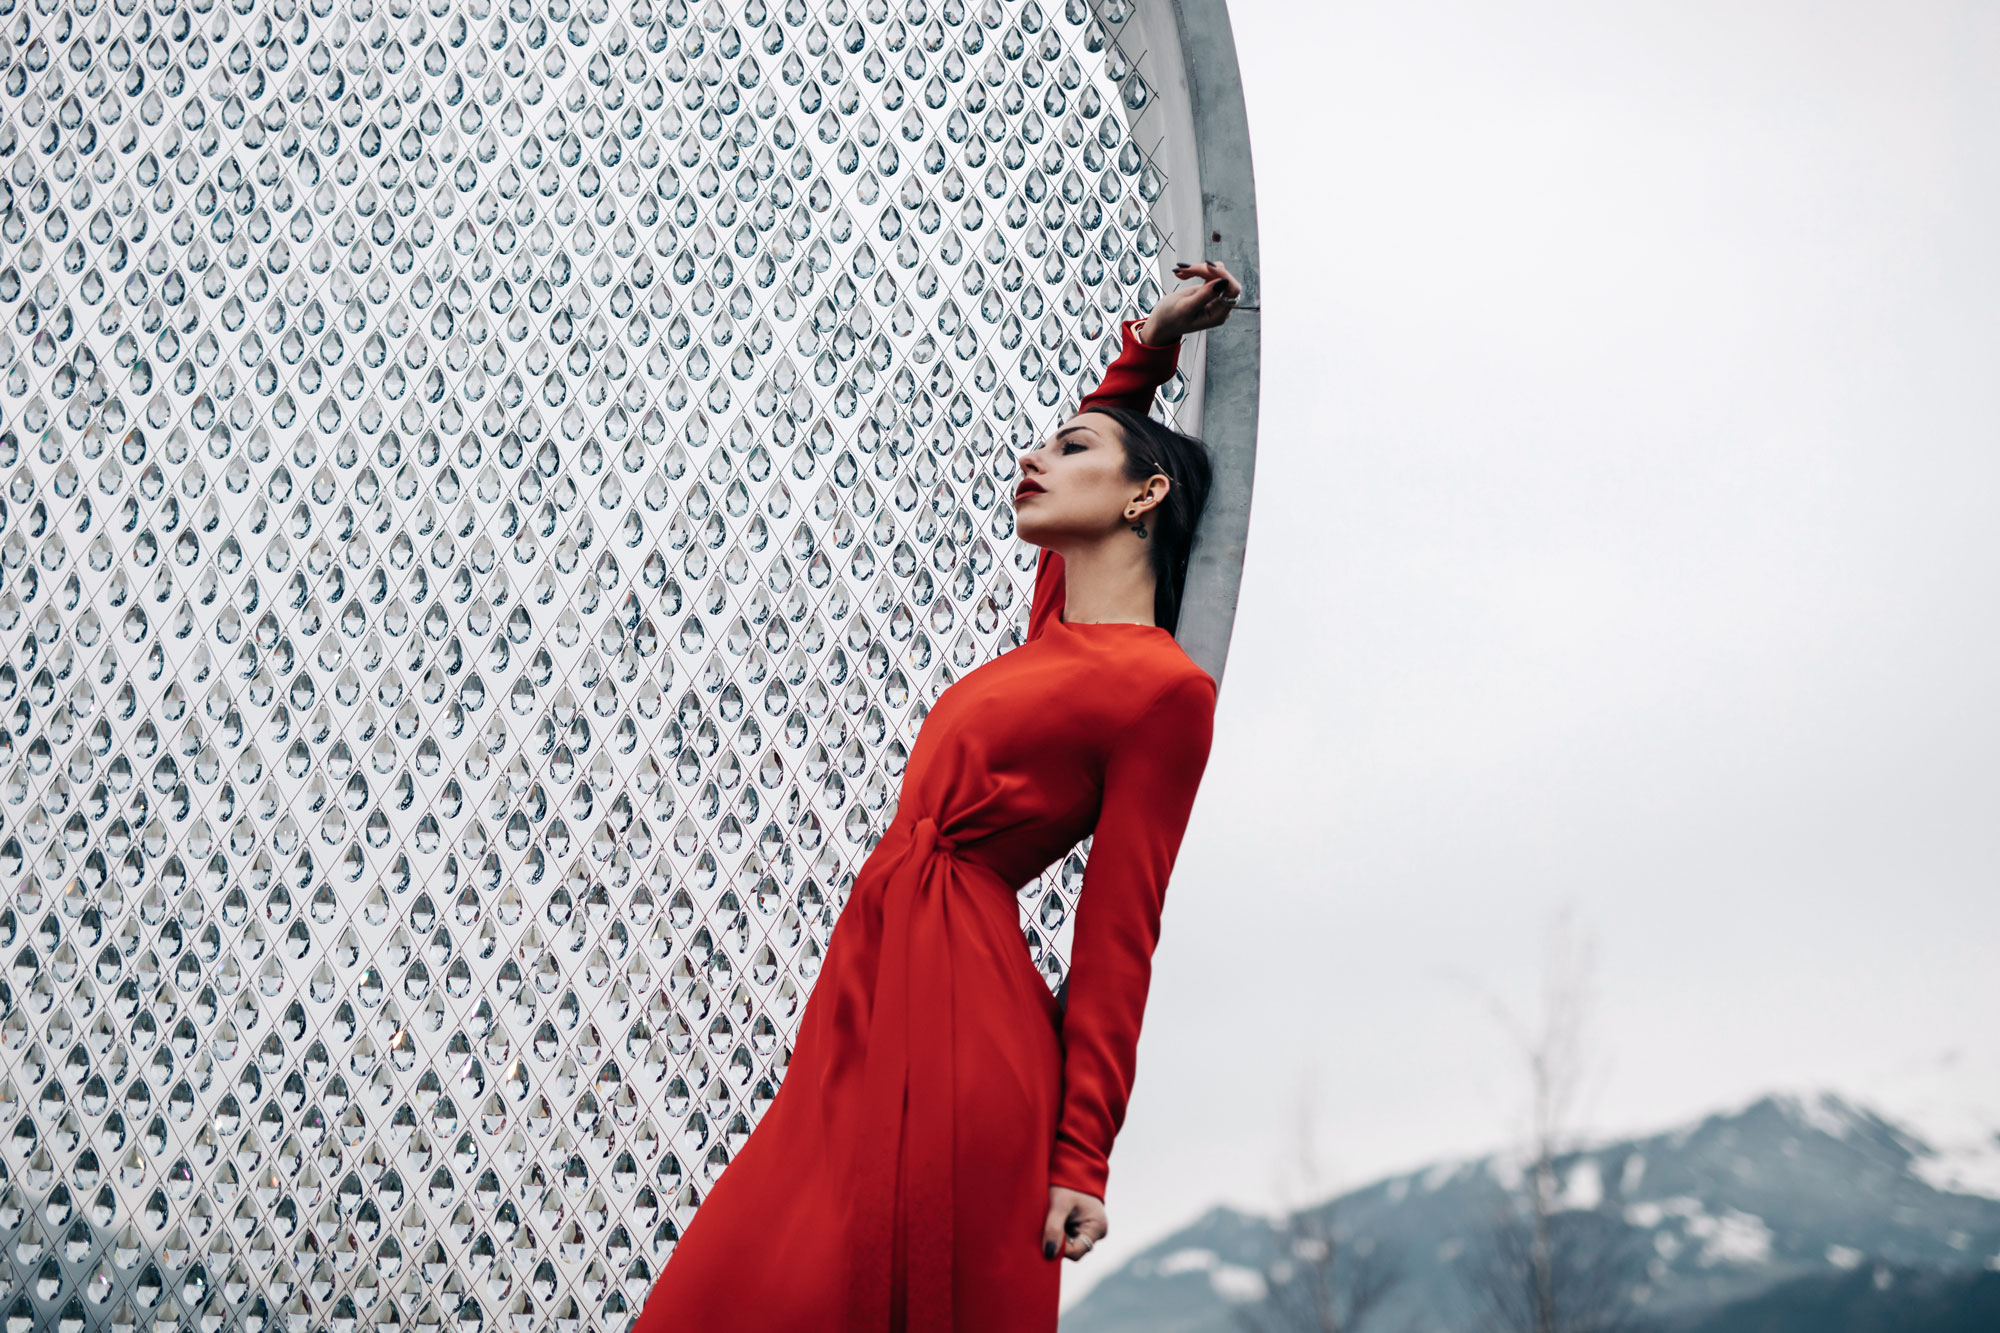 Editorial Shooting in the Swarovski Crystal World | fashion | red, long evening dress: Escada | style: elegant, Glamour, evening, dinner, sexy, chic | Lady in Red | Innsbruck, Austria | sight seeing